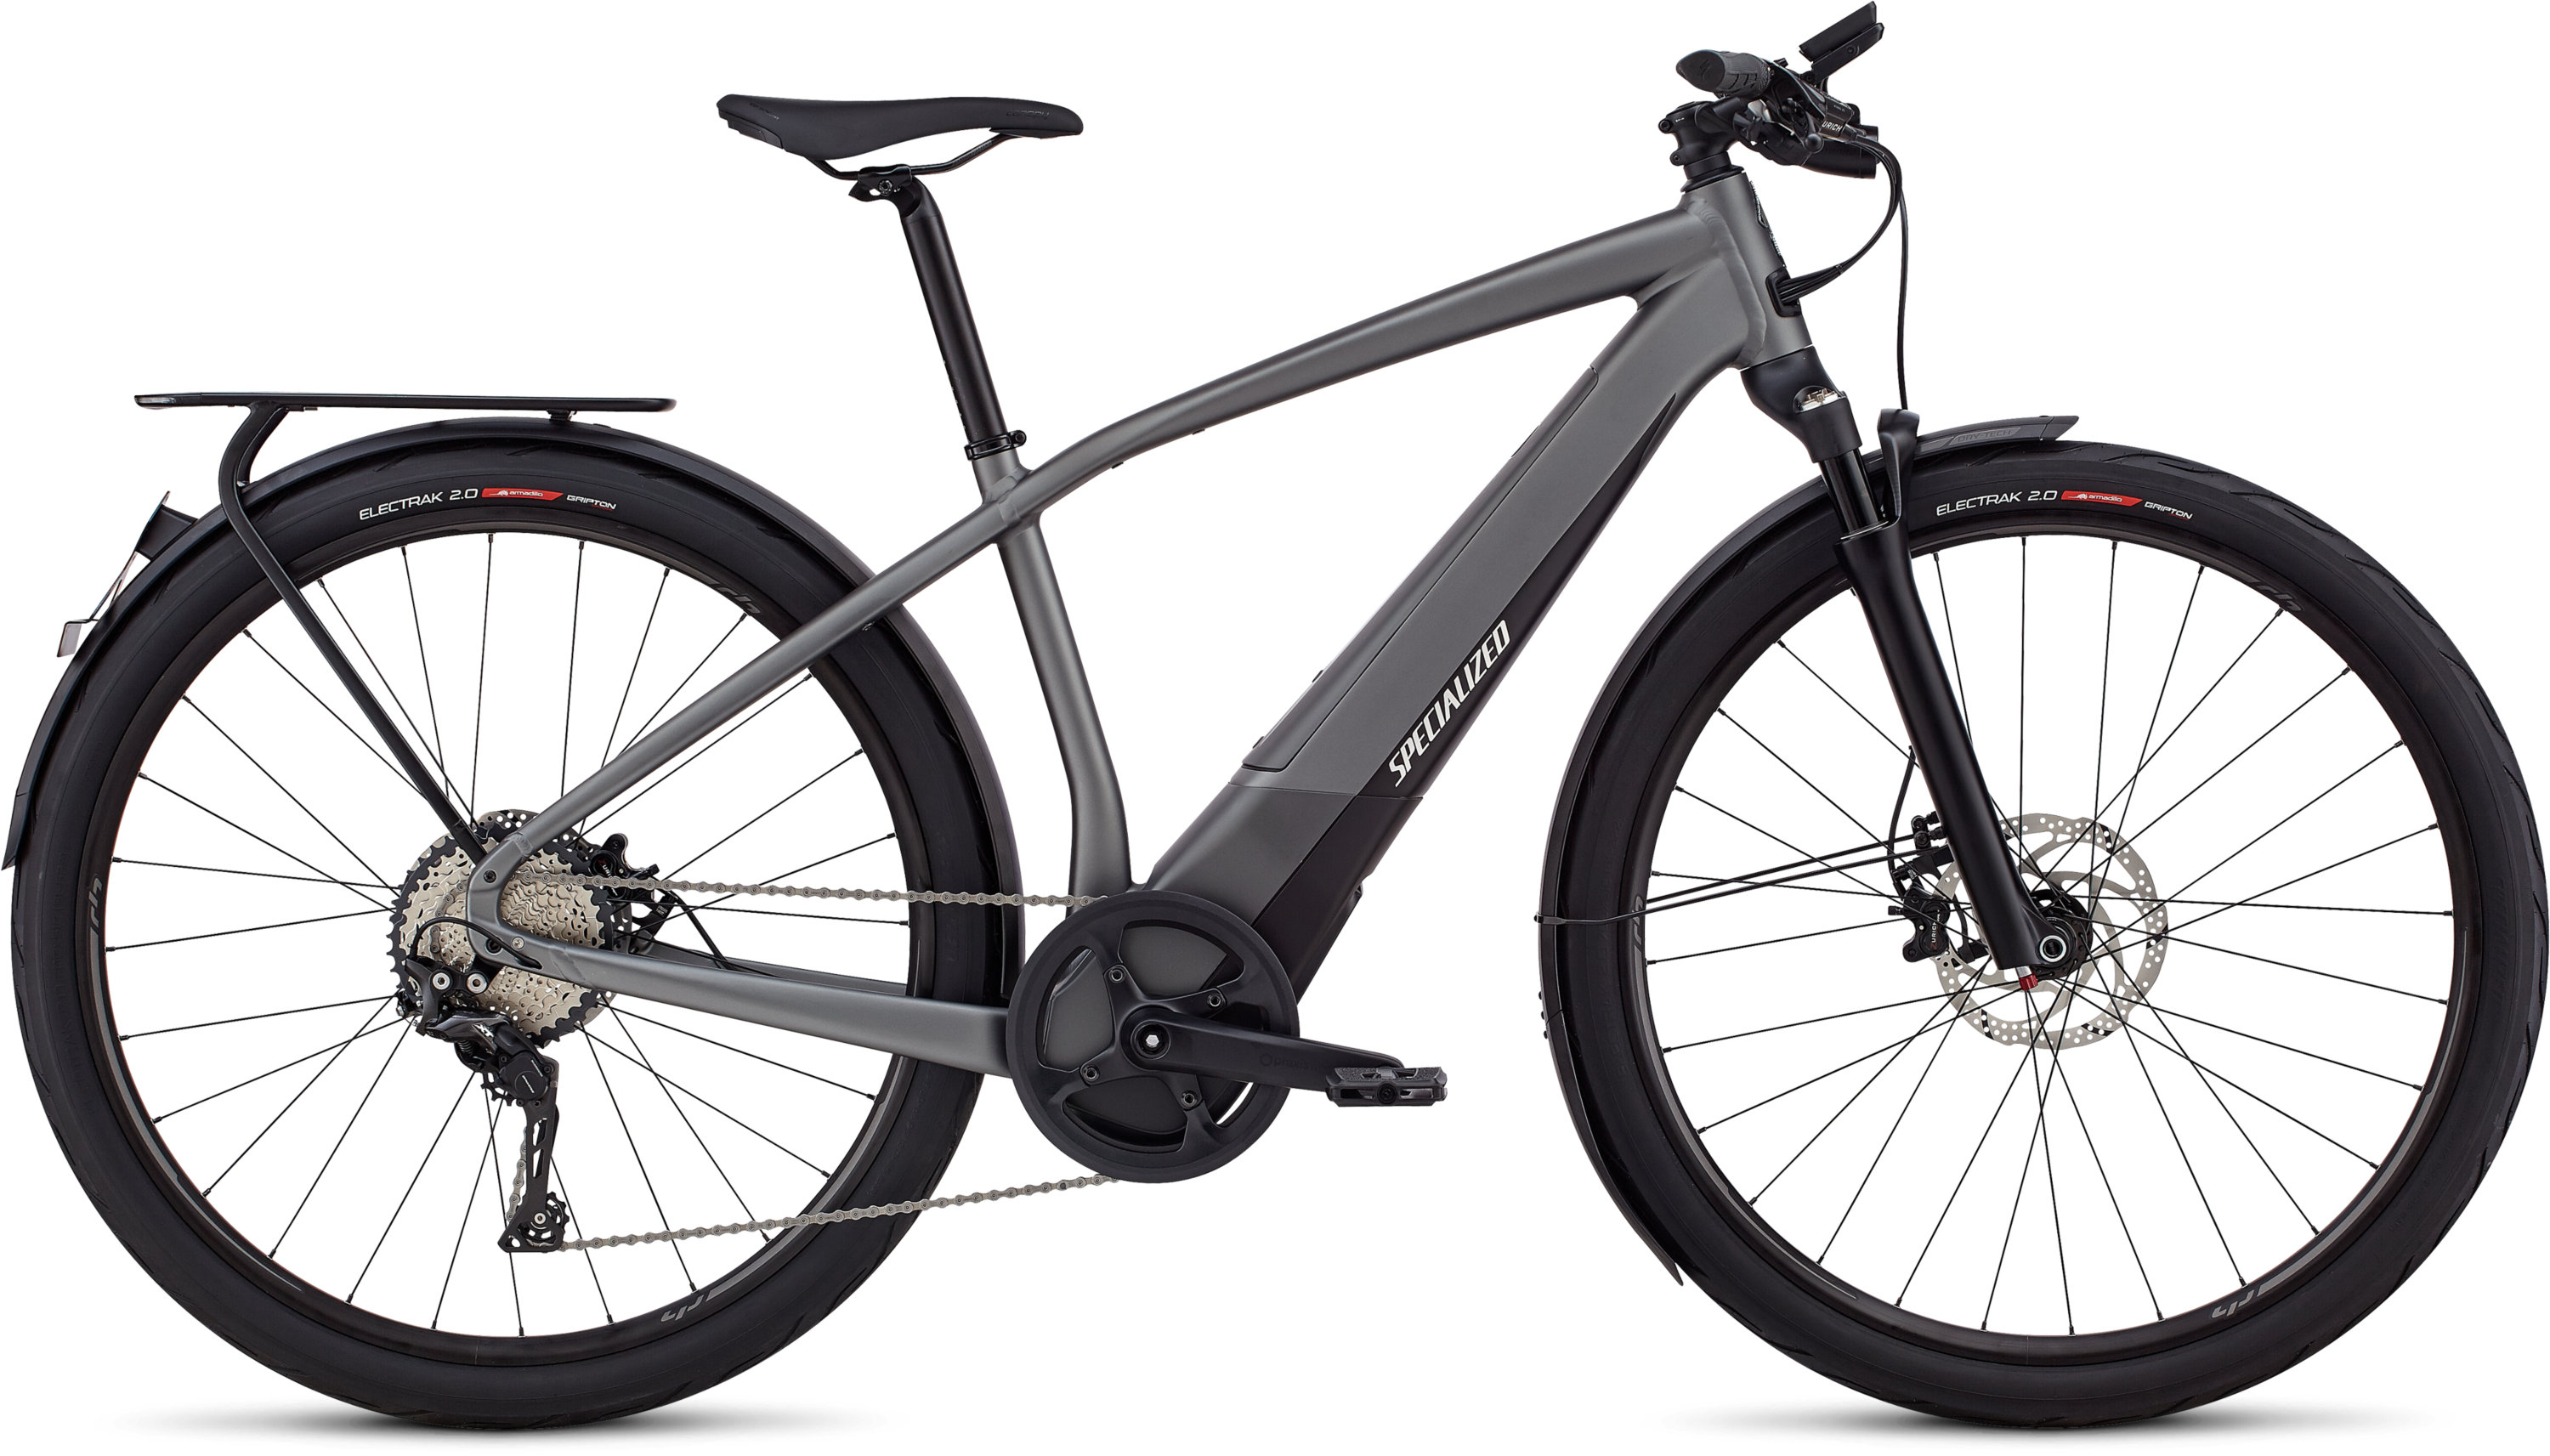 Specialized Men´s Turbo Vado 6.0 Gloss Charcoal / Black / Chrome LG - Specialized Men´s Turbo Vado 6.0 Gloss Charcoal / Black / Chrome LG